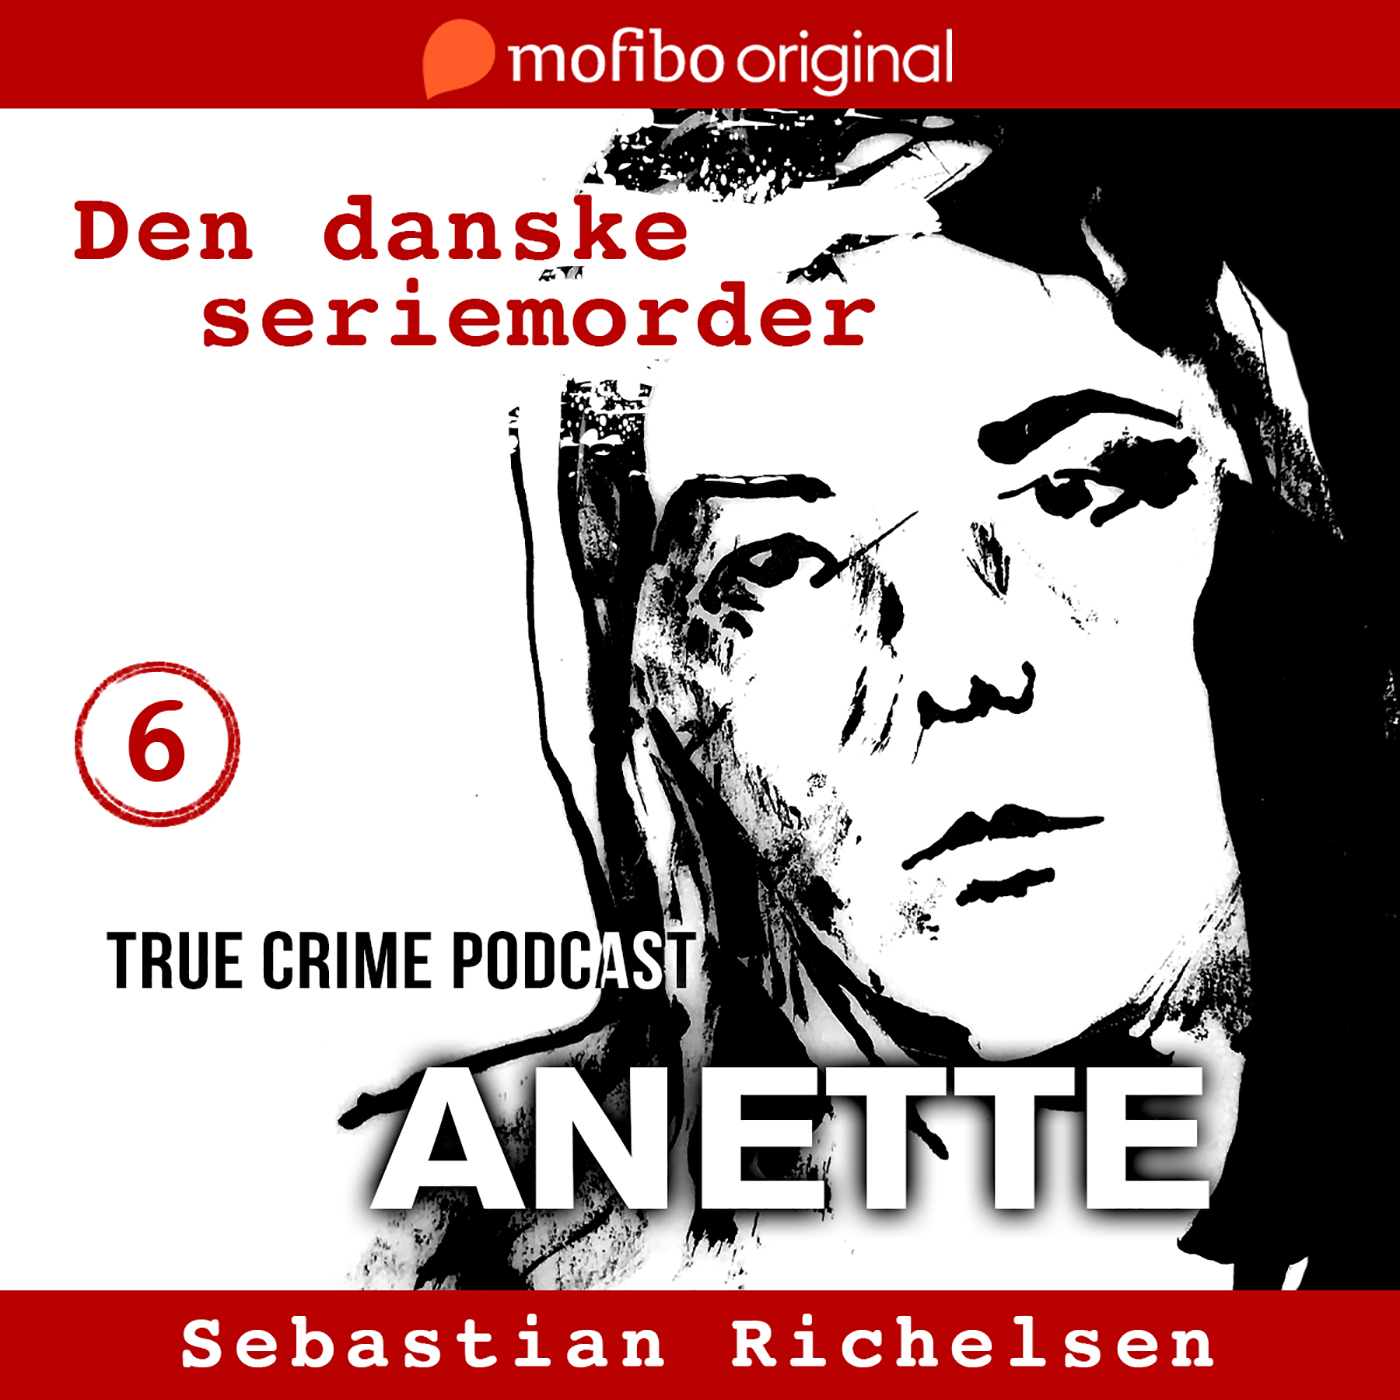 Episode 6 - Anette